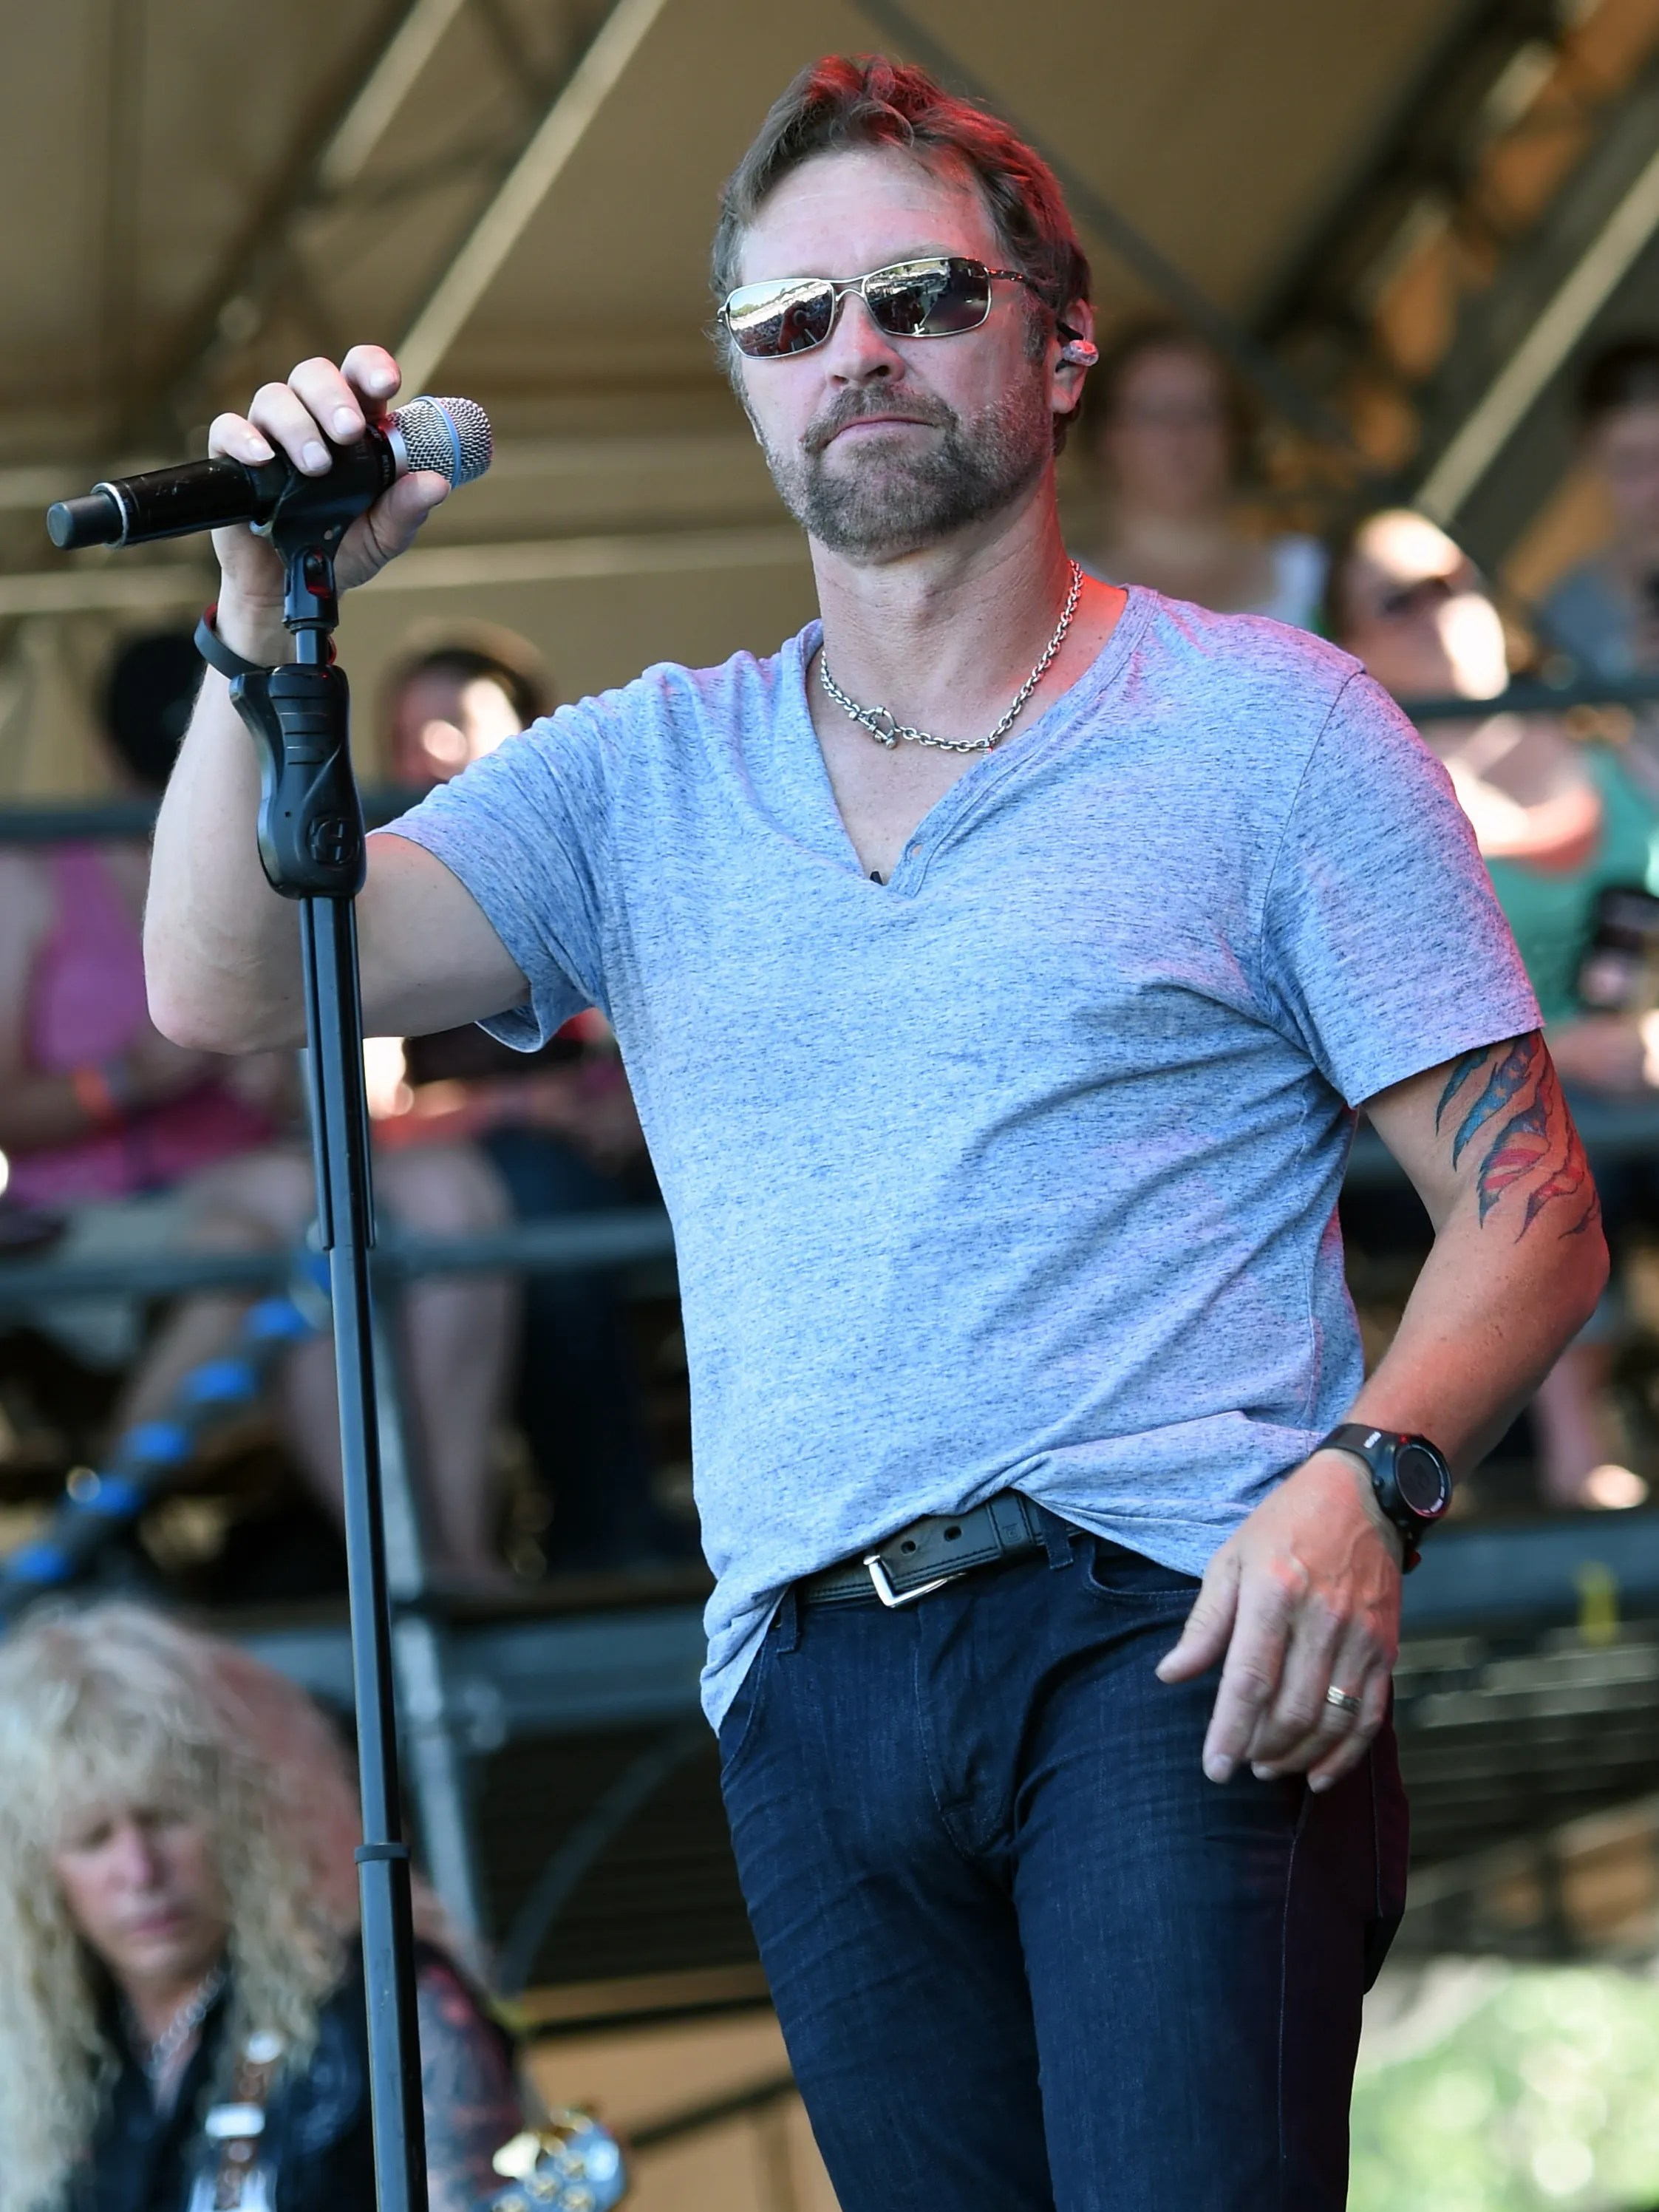 Boating Accident Son Of Country Singer Craig Morgan Dead